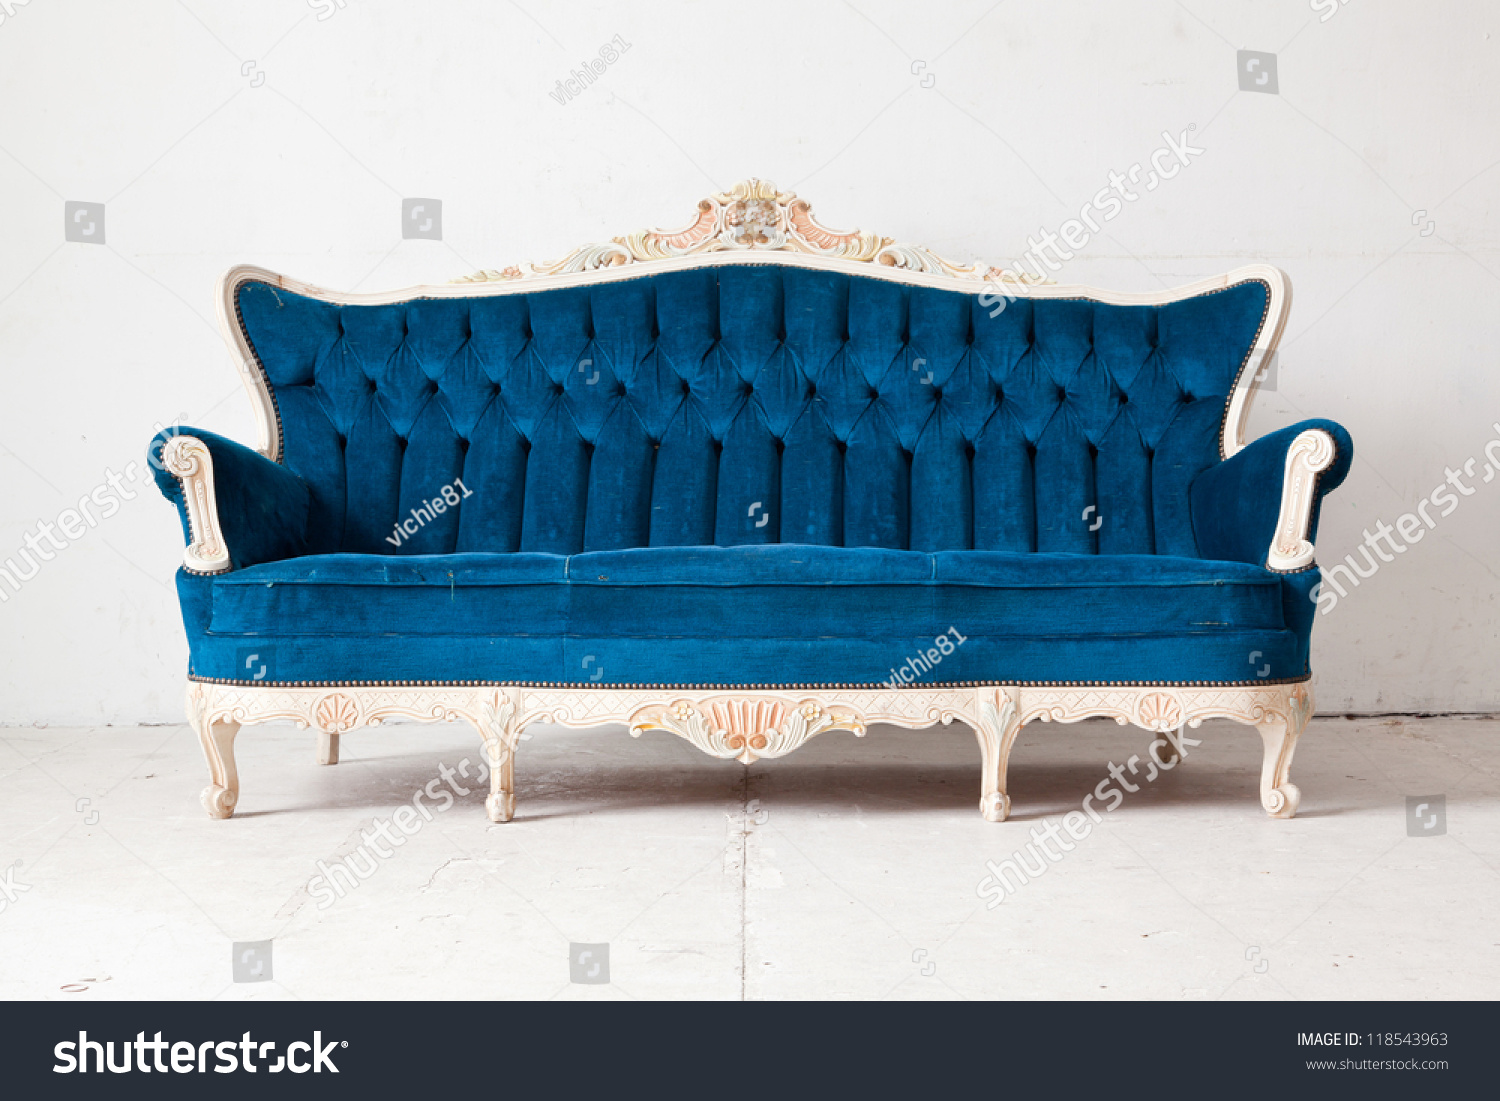 Blue Vintage Classical Style Sofa Bed Stock Photo